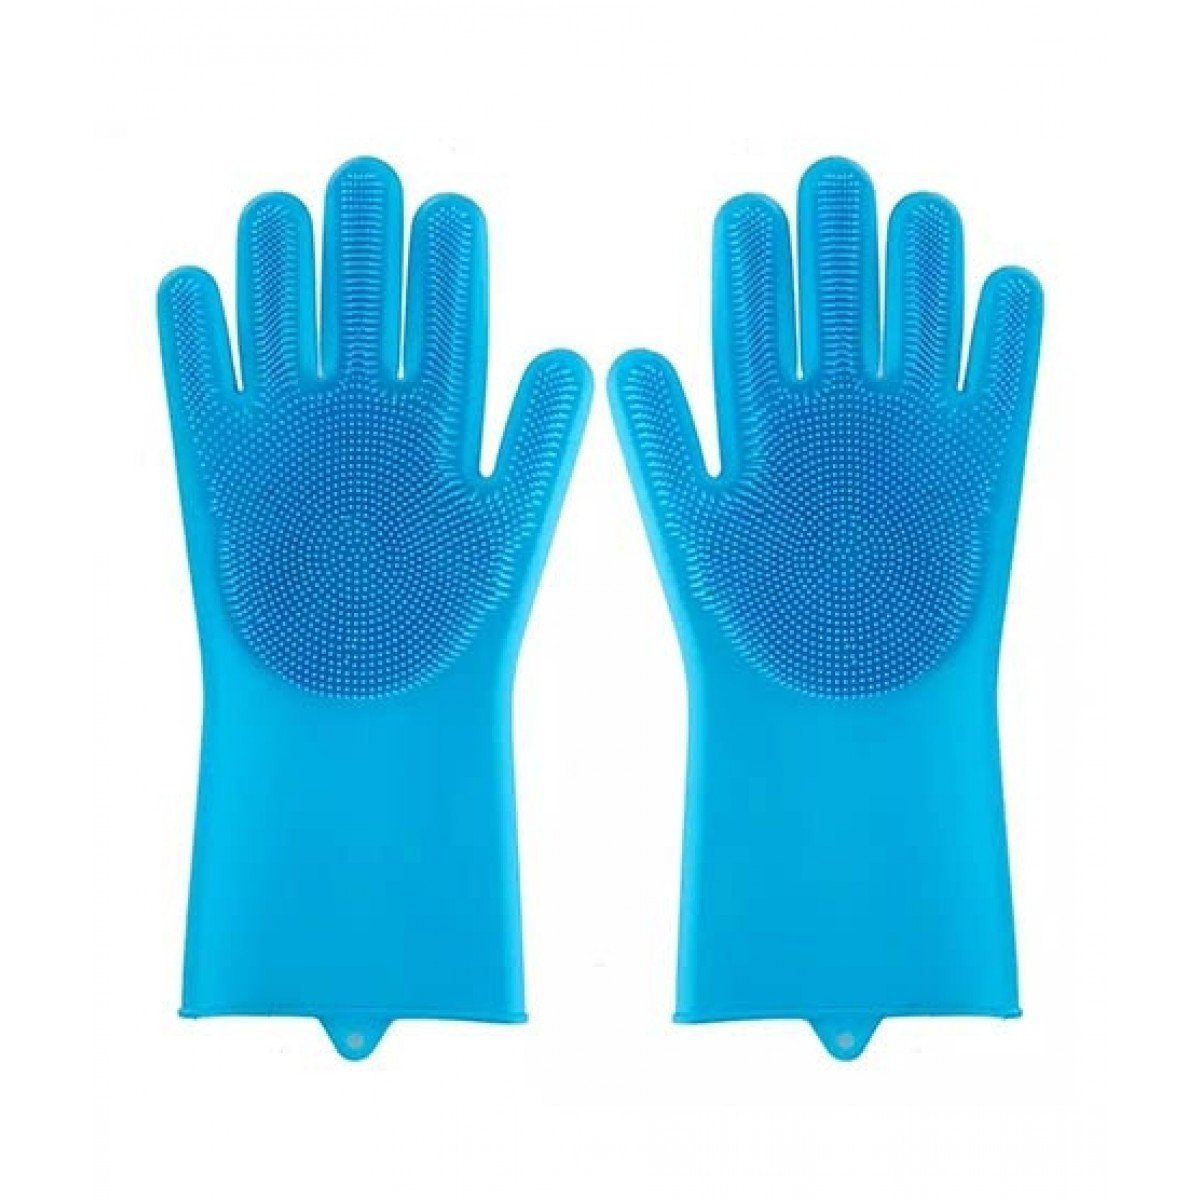 Eshall Magic Dish Washing Gloves with Scrubber Blue